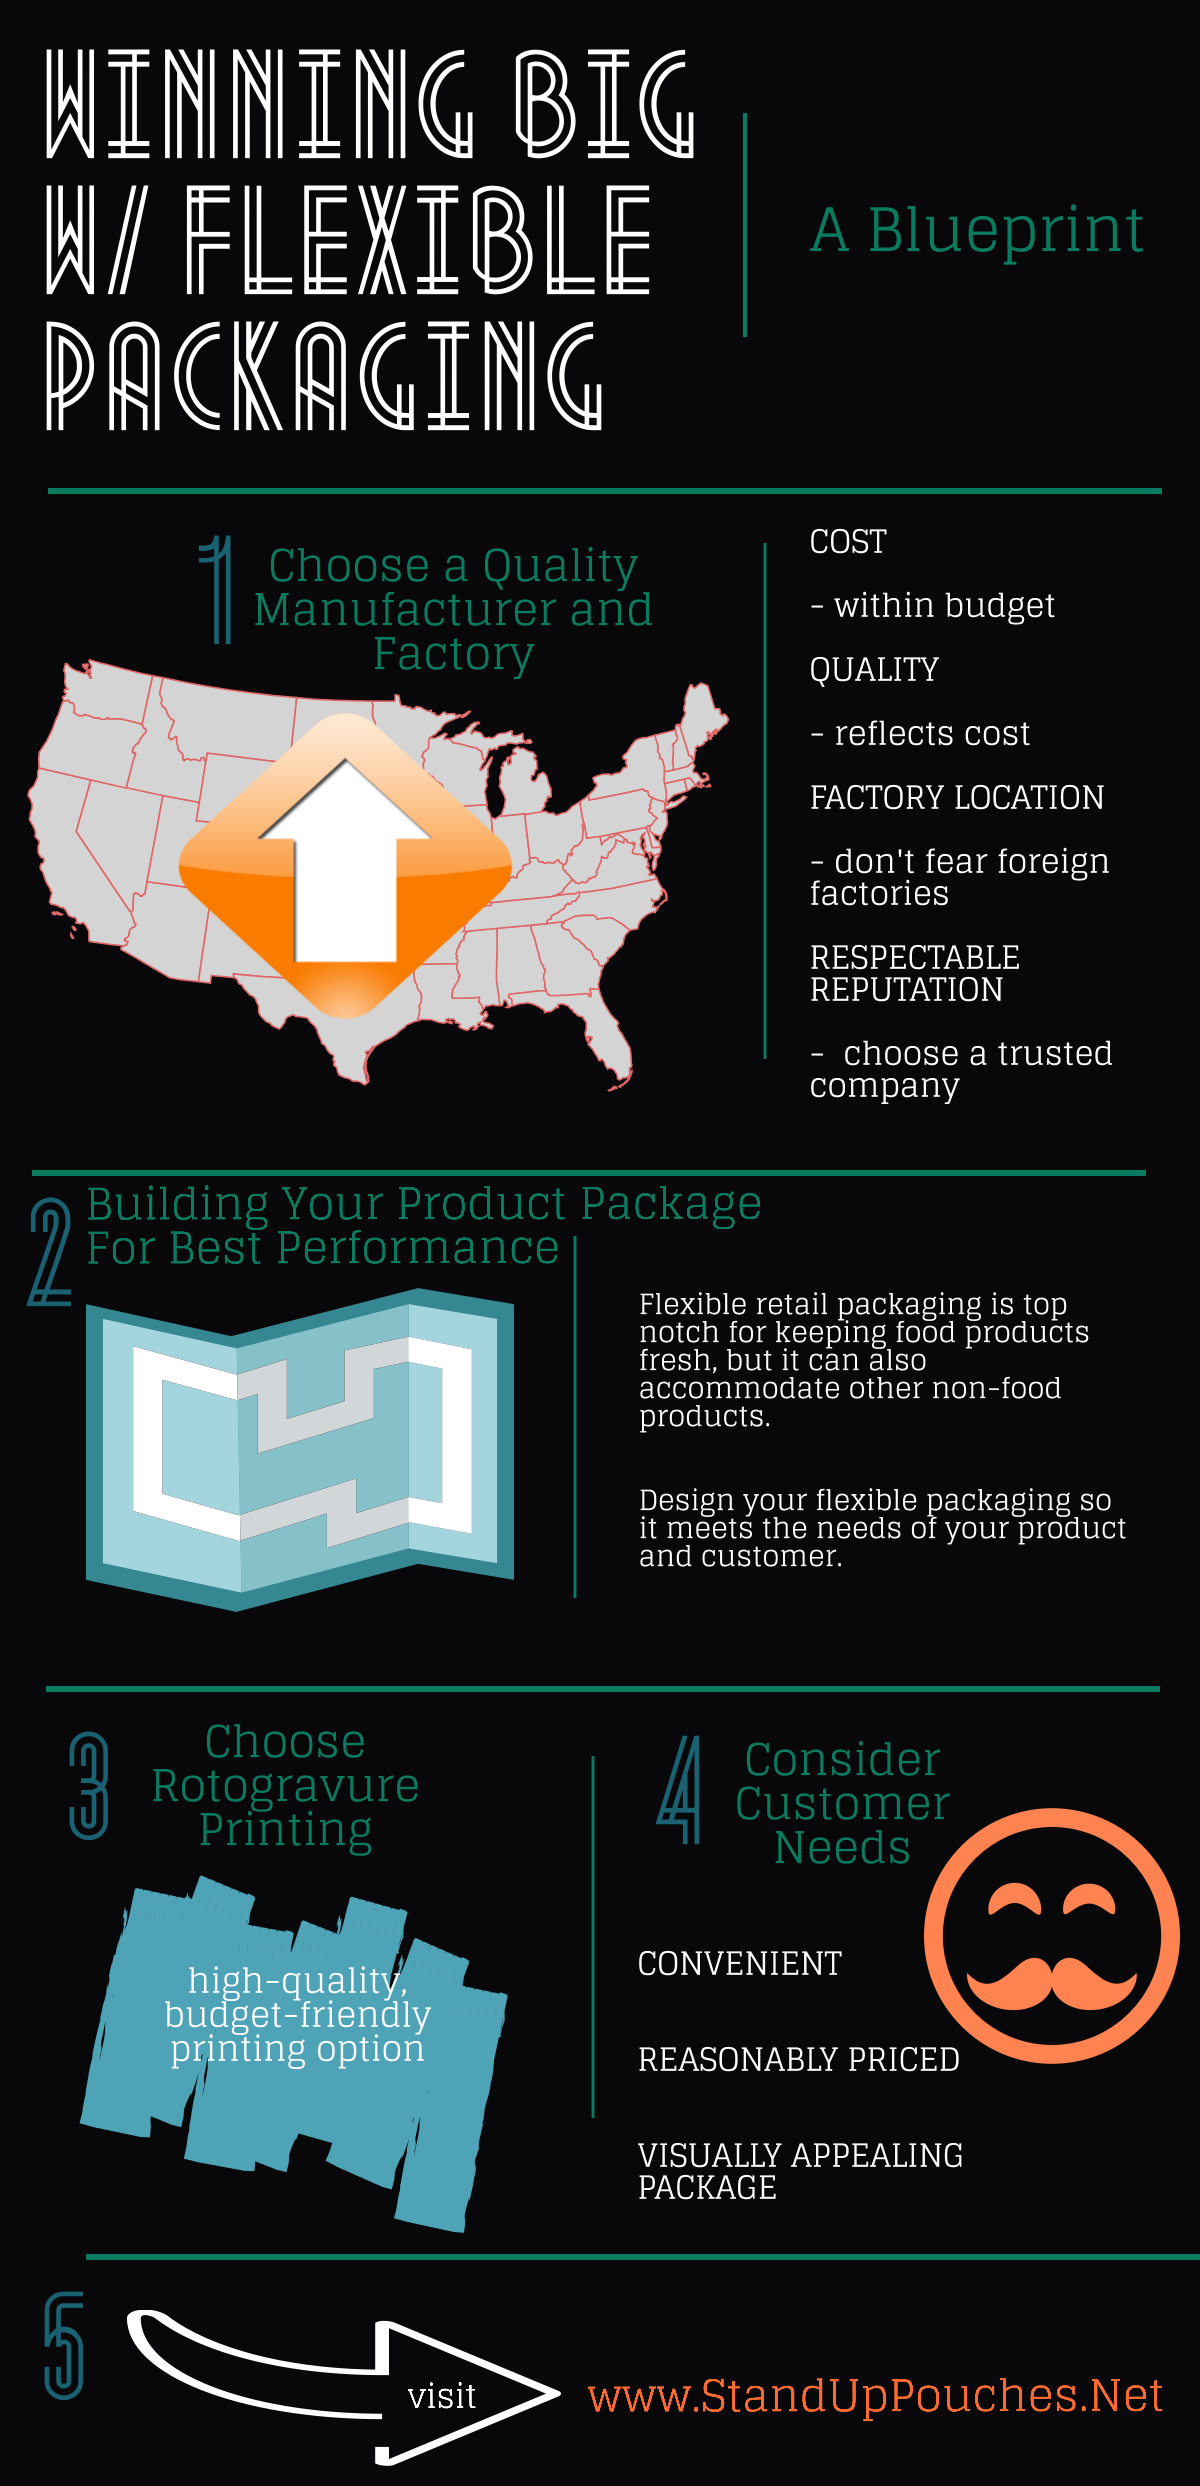 Your blueprint to winning big with flexible packaging malvernweather Choice Image